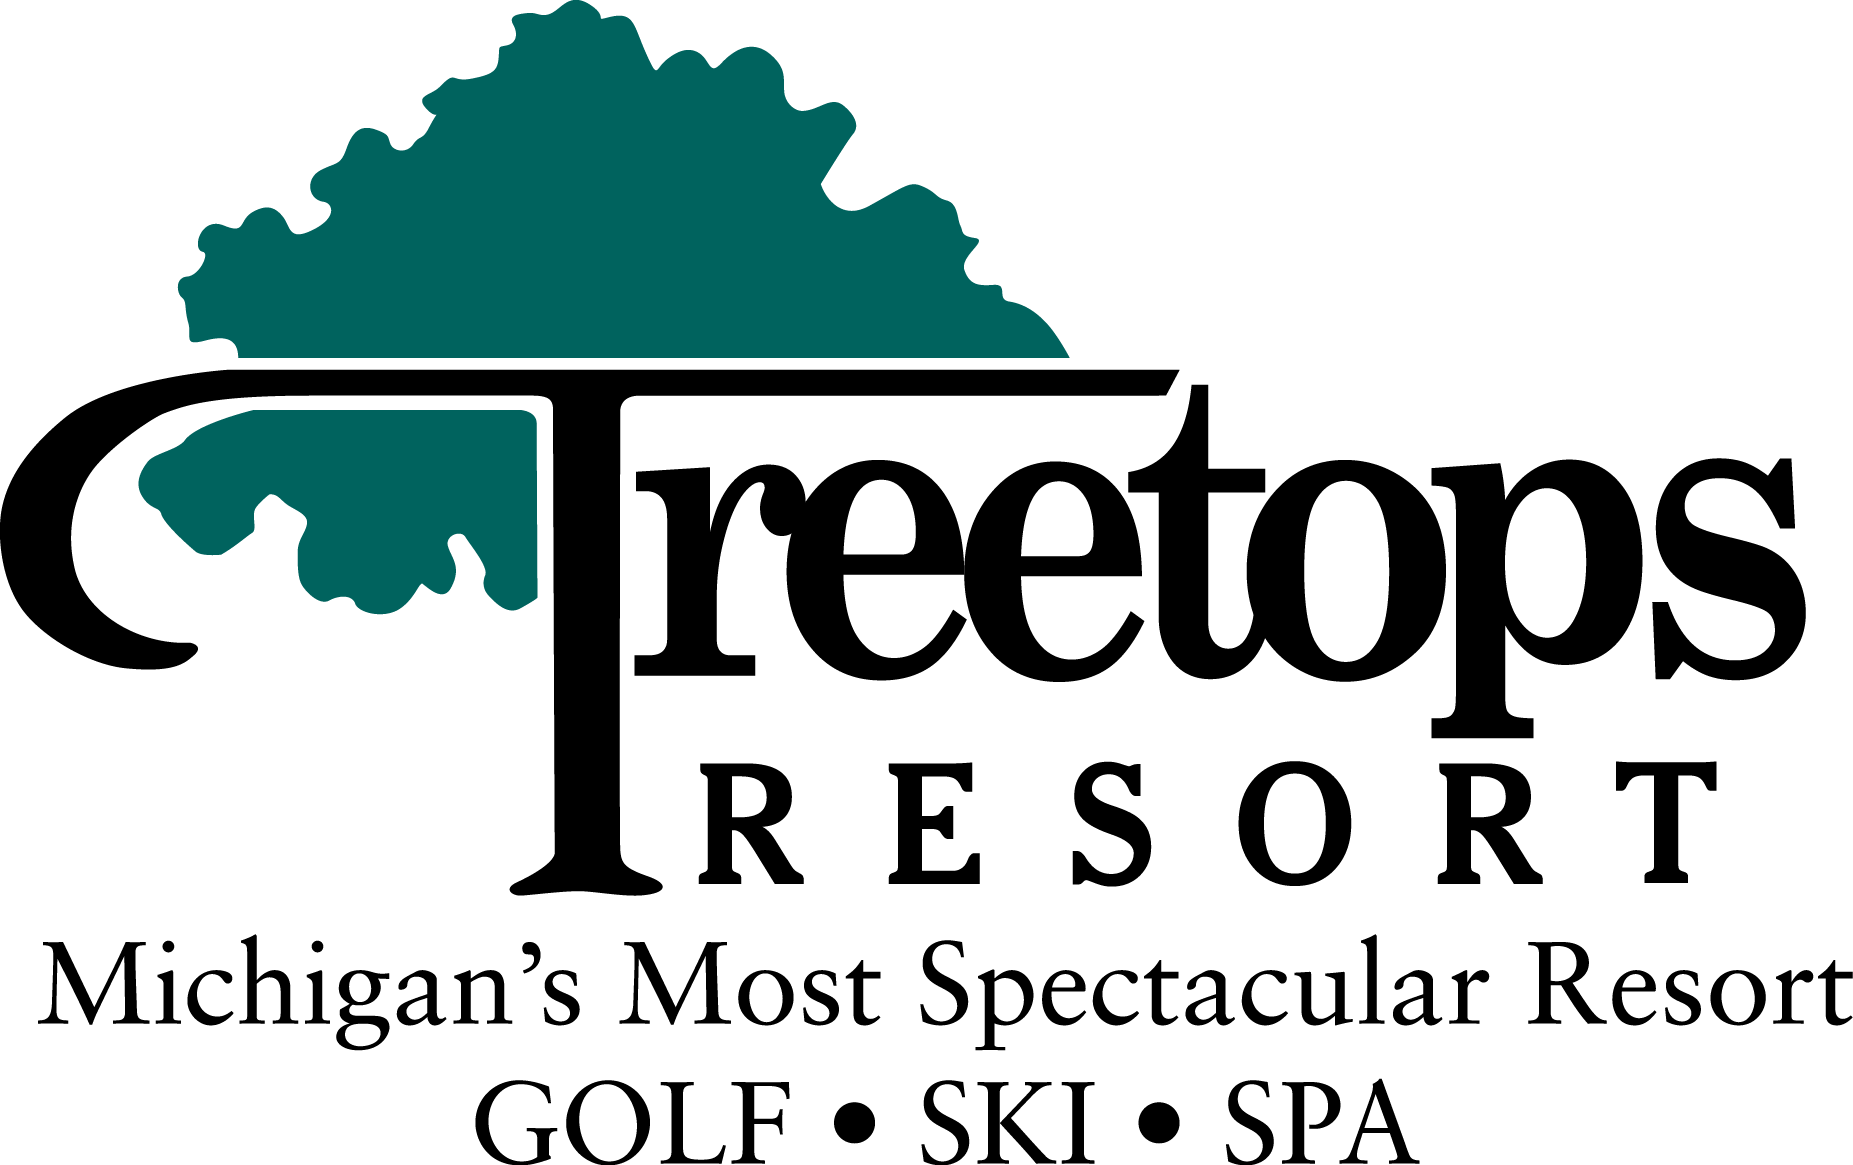 Treetops-Resort-logo-w-tag-outlines